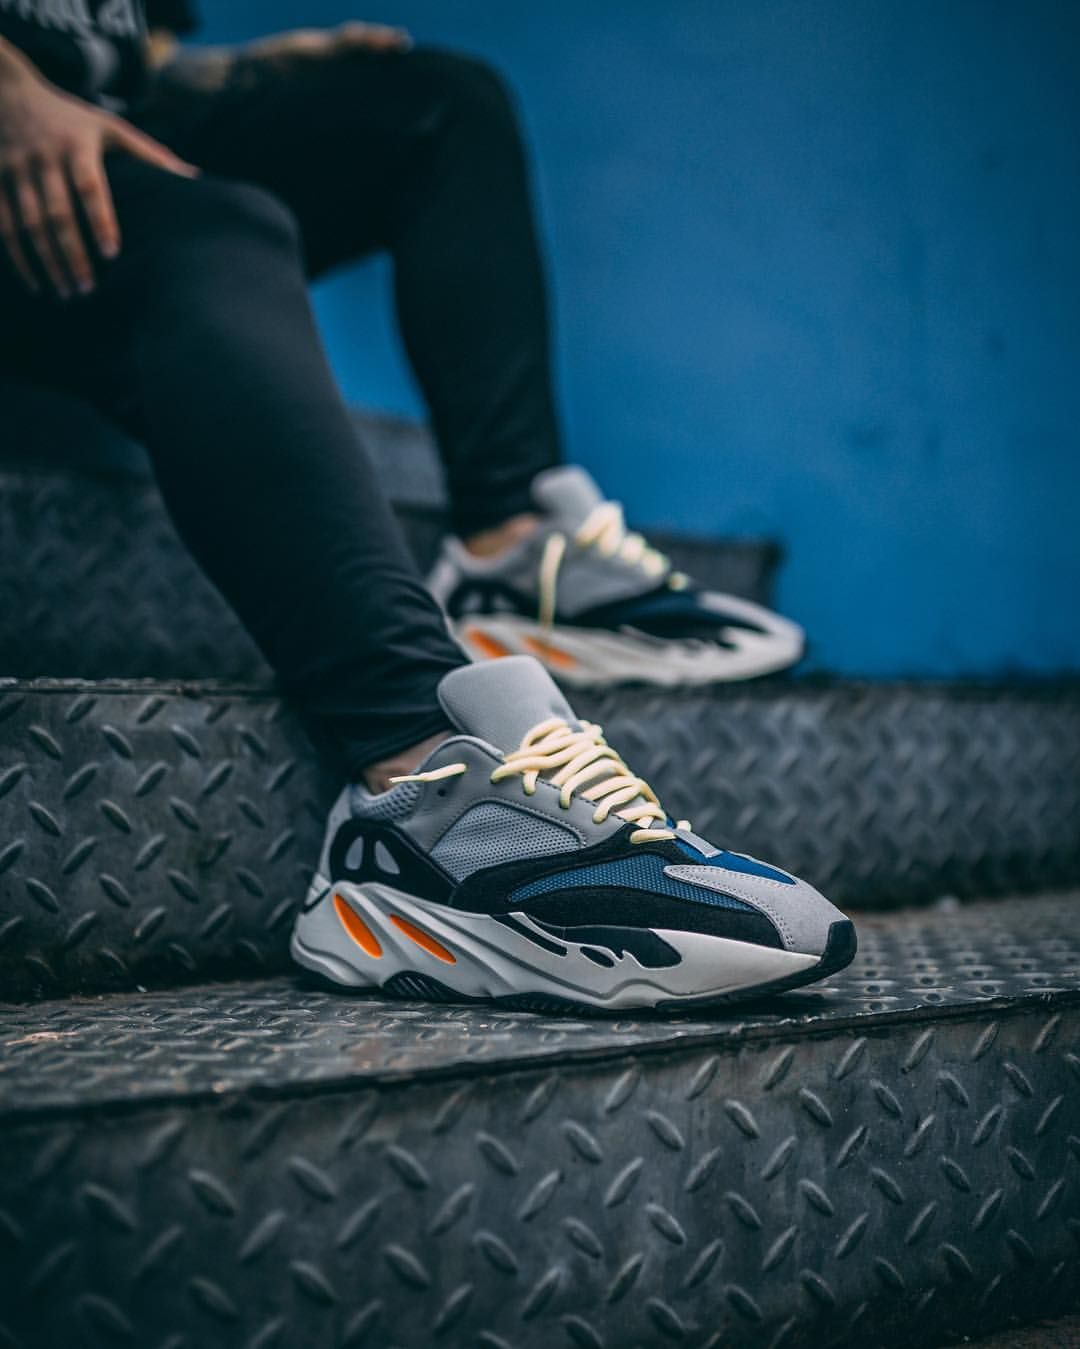 """ab18759a1 adidas Yeezy Boost 700 """"Wave Runner"""""""